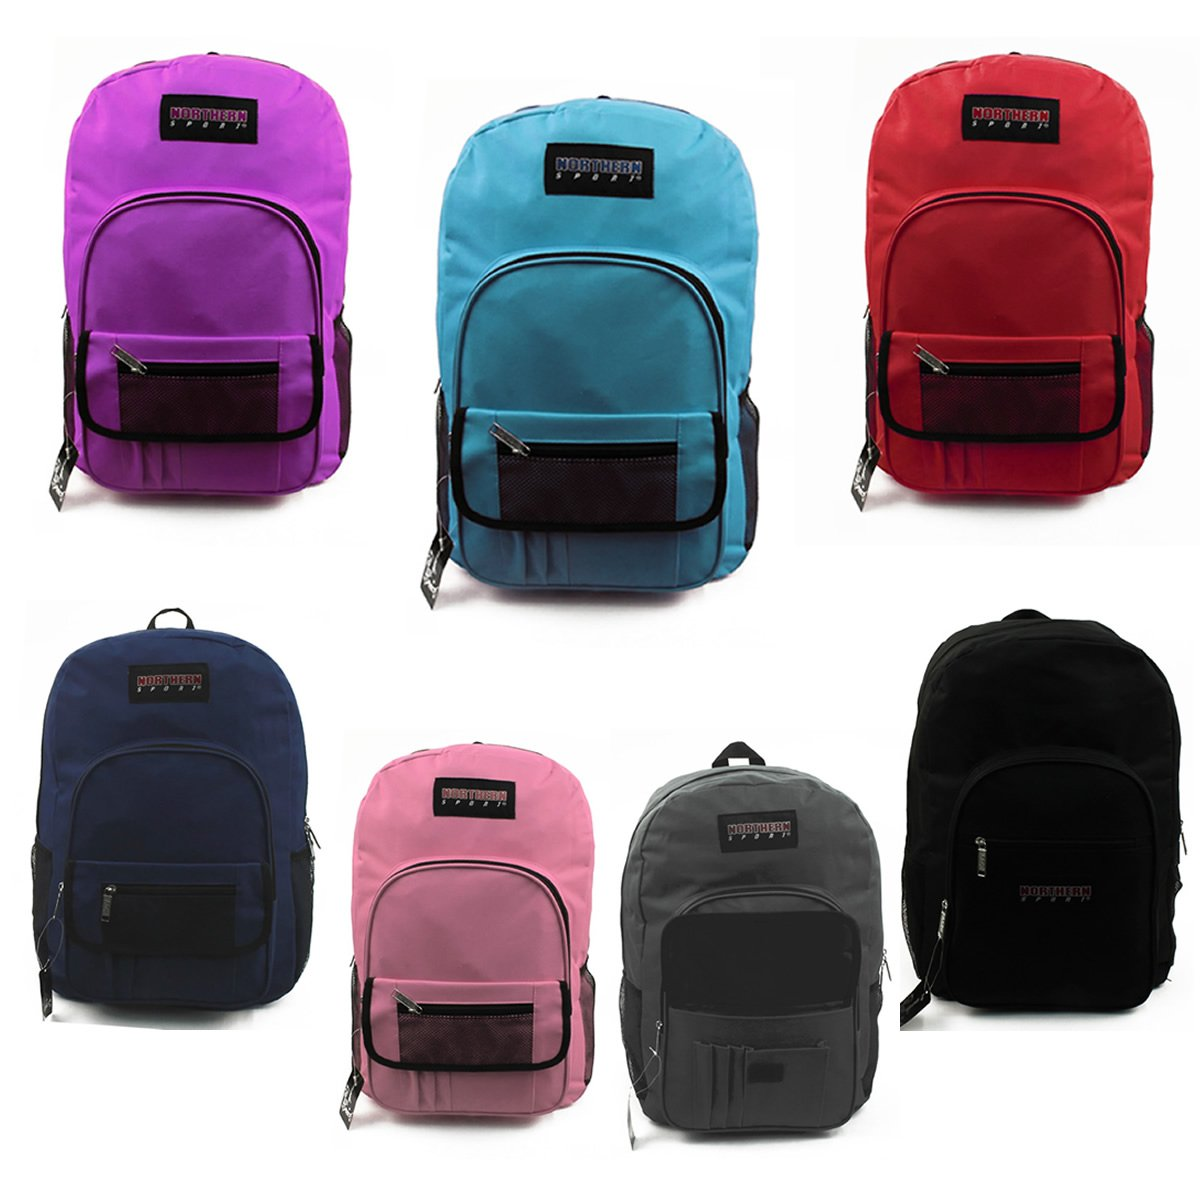 19'' WHOLESALE NORTHERN SPORT BACKPACKS 7 COLORS - CASE OF 24 - NS-B5998